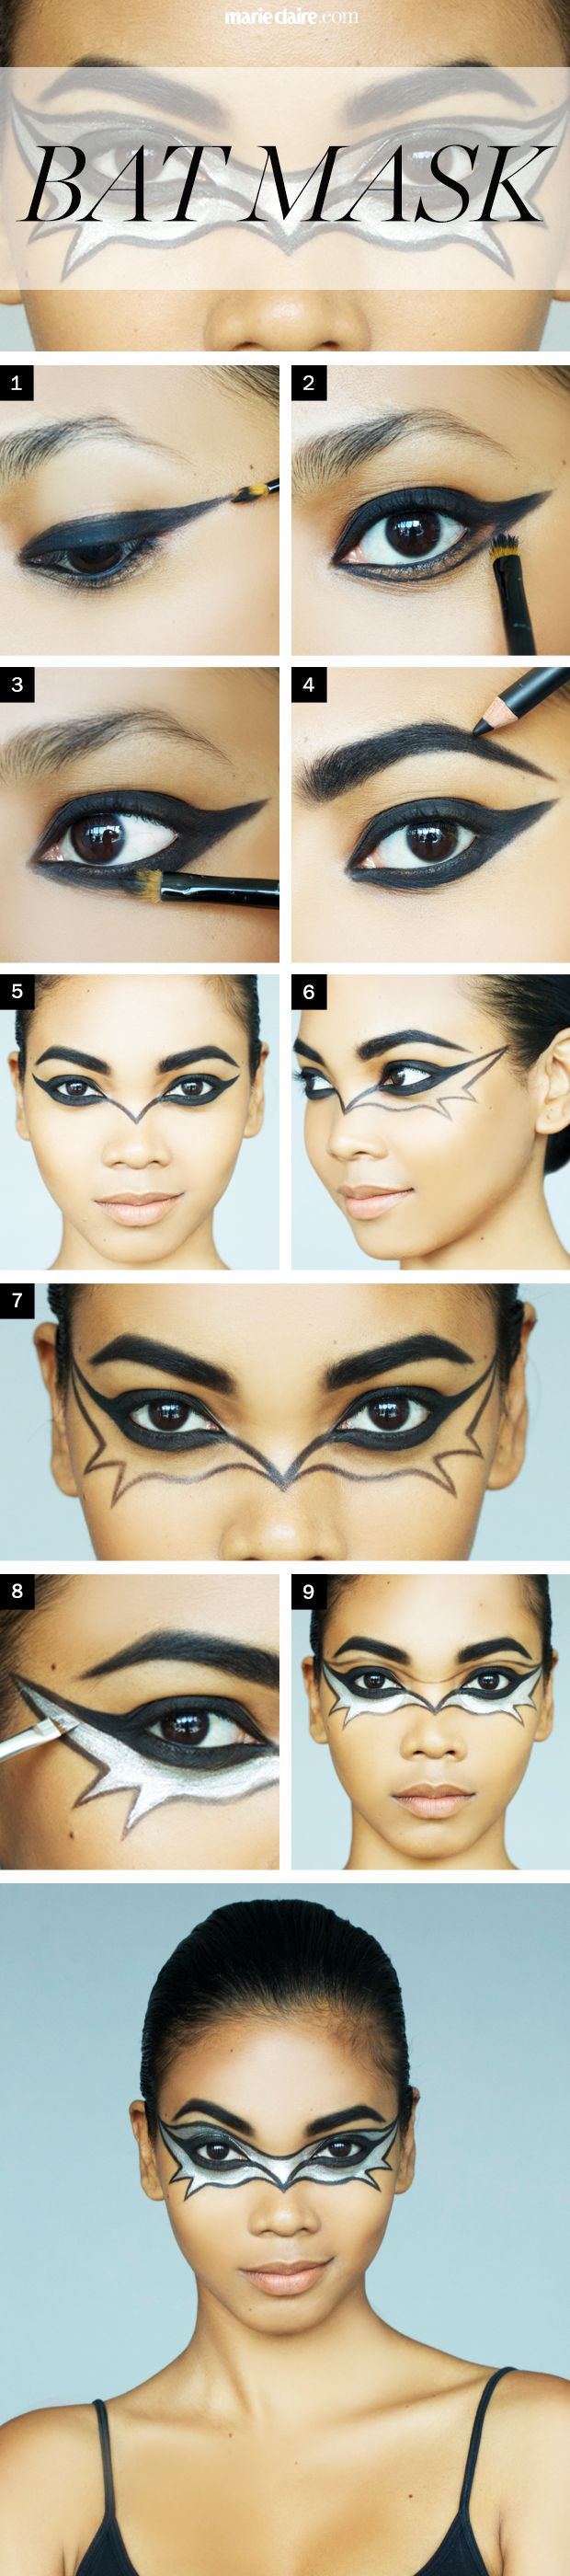 Hallowee Makeup How-To Bat Girl Mask - Halloween Makeup Ideas - Marie Claire www.lab333.com https://www.facebook.com/pages/LAB-STYLE/585086788169863 http://www.labs333style.com www.lablikes.tumblr.com www.pinterest.com/labstyle